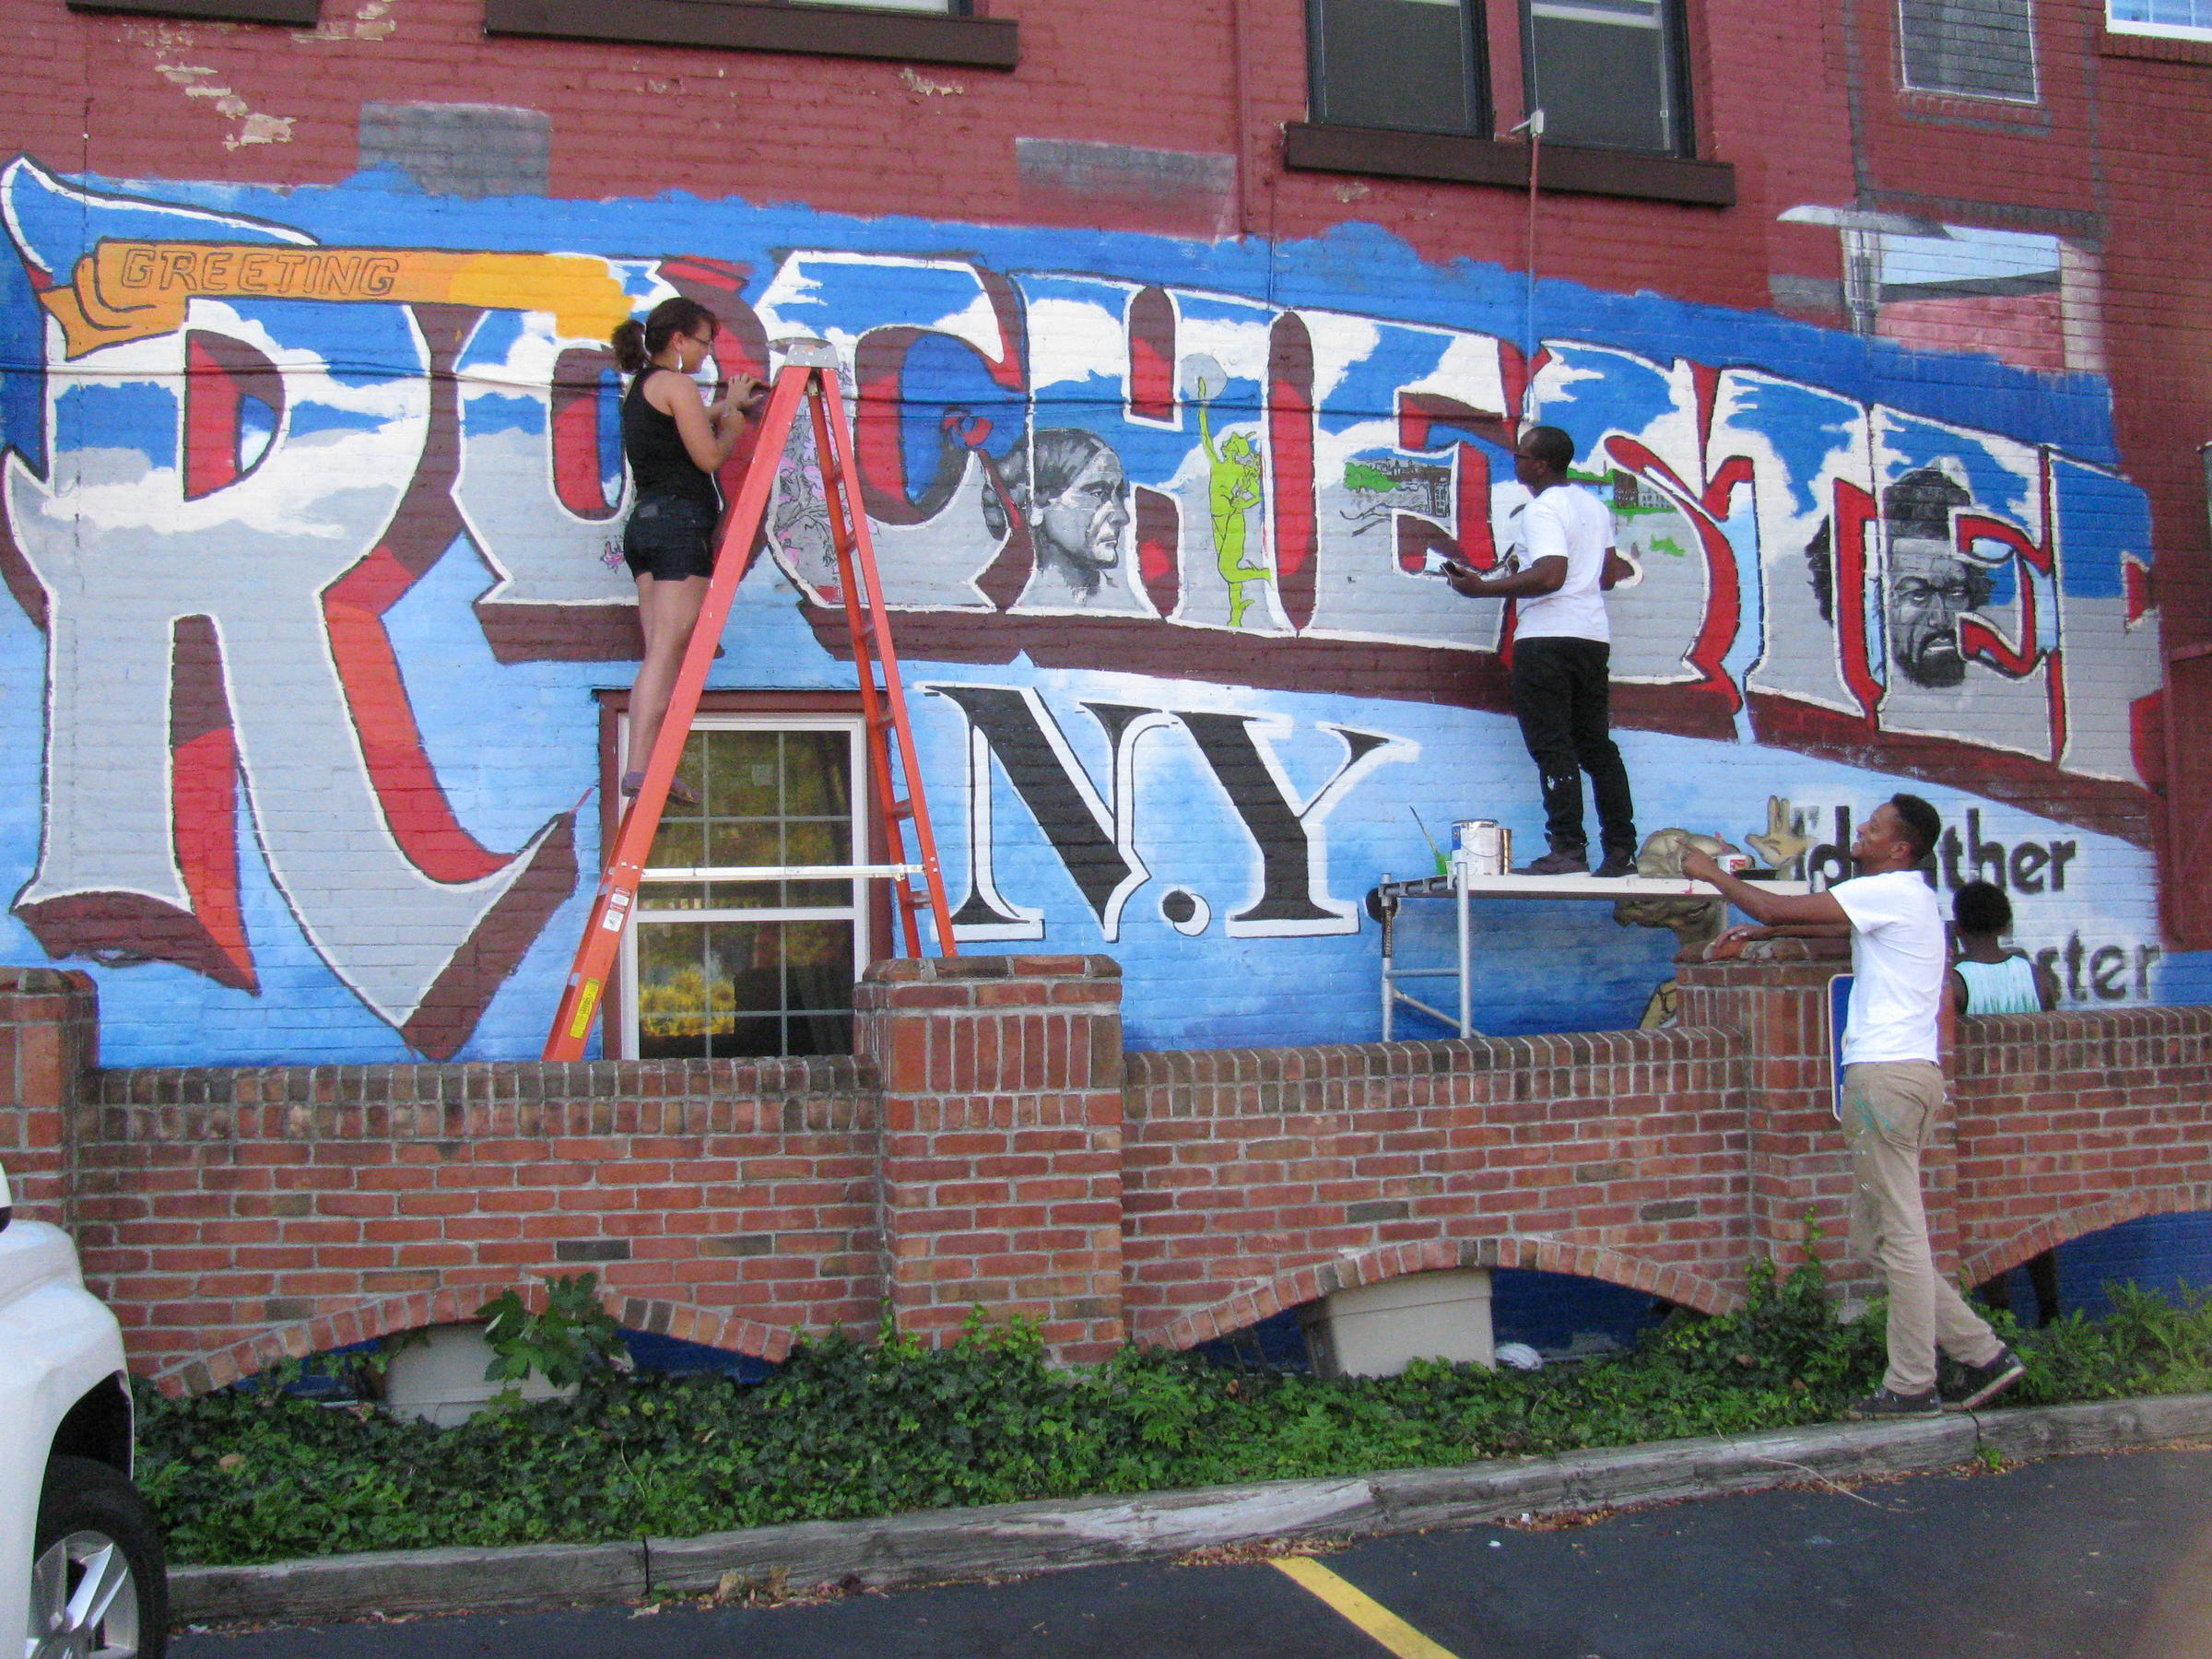 mural project Sad news about one of our murals dear greensboro, we have recently been informed that the building on which our tough love mural is being painted, downtown across.